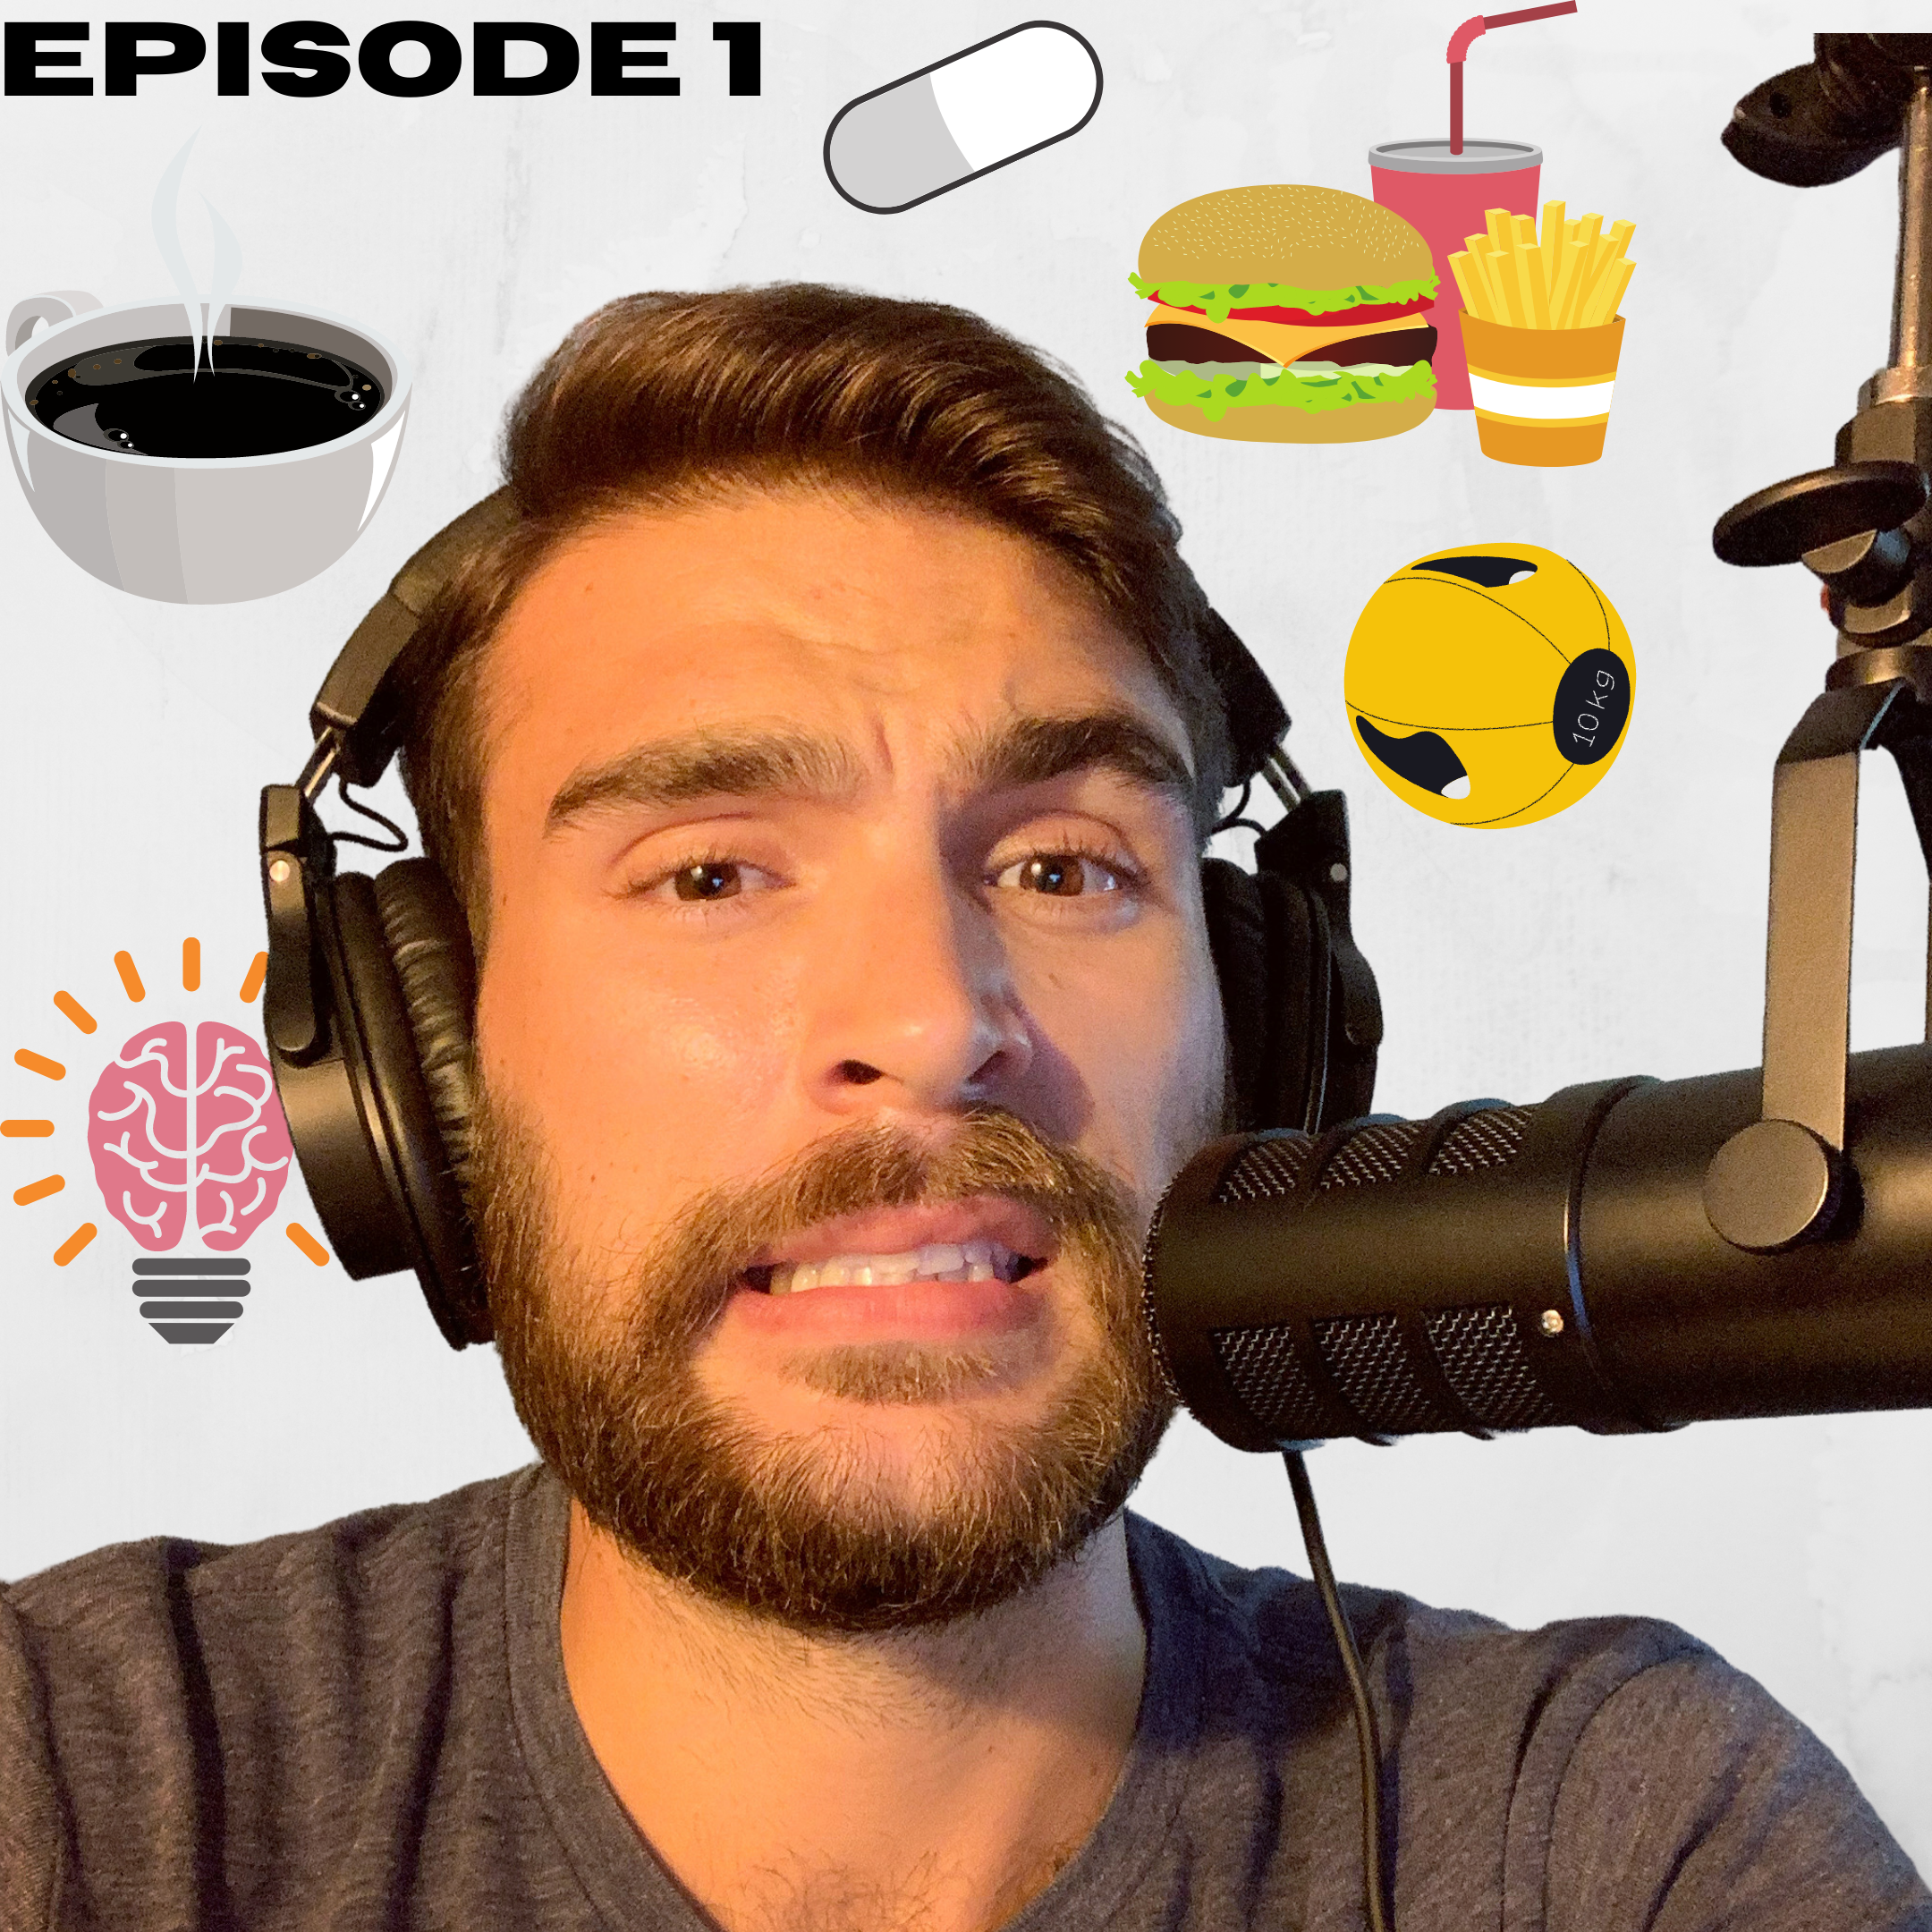 Ep.1 – Q+A: Focus & Energy Supplements, Refeed Meals vs. Balanced Eating, Sleds and Concentric Training, Mindset for Change